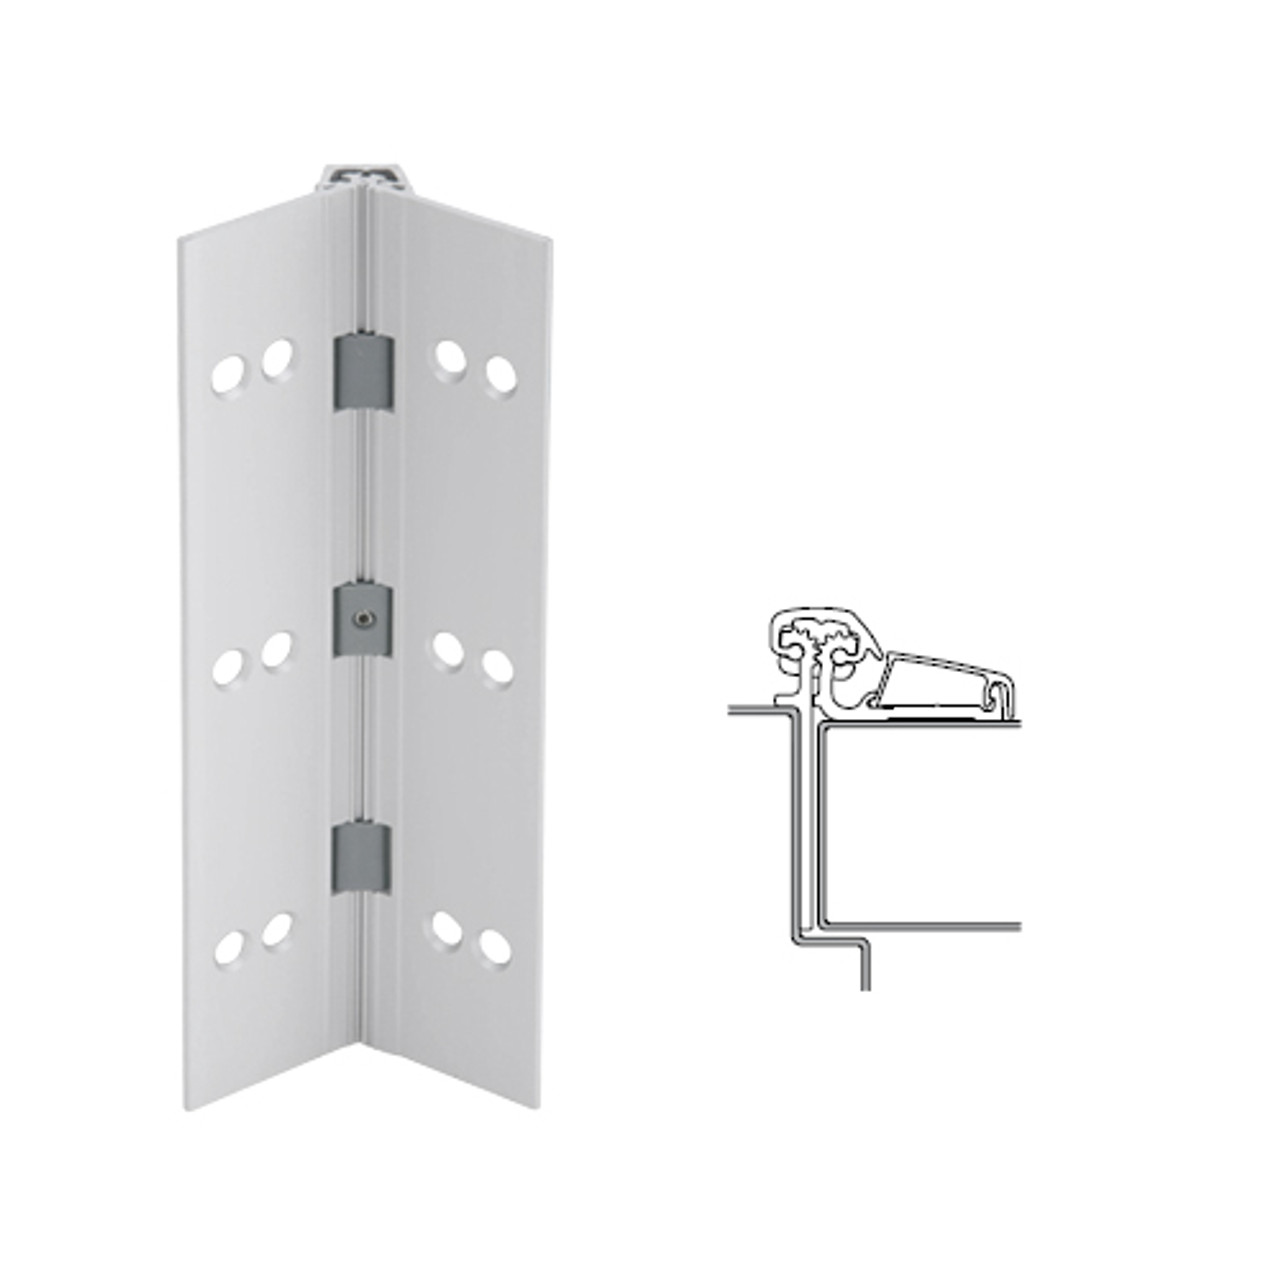 054XY-US28-85-SECWDHM IVES Adjustable Half Surface Continuous Geared Hinges with Security Screws - Hex Pin Drive in Satin Aluminum